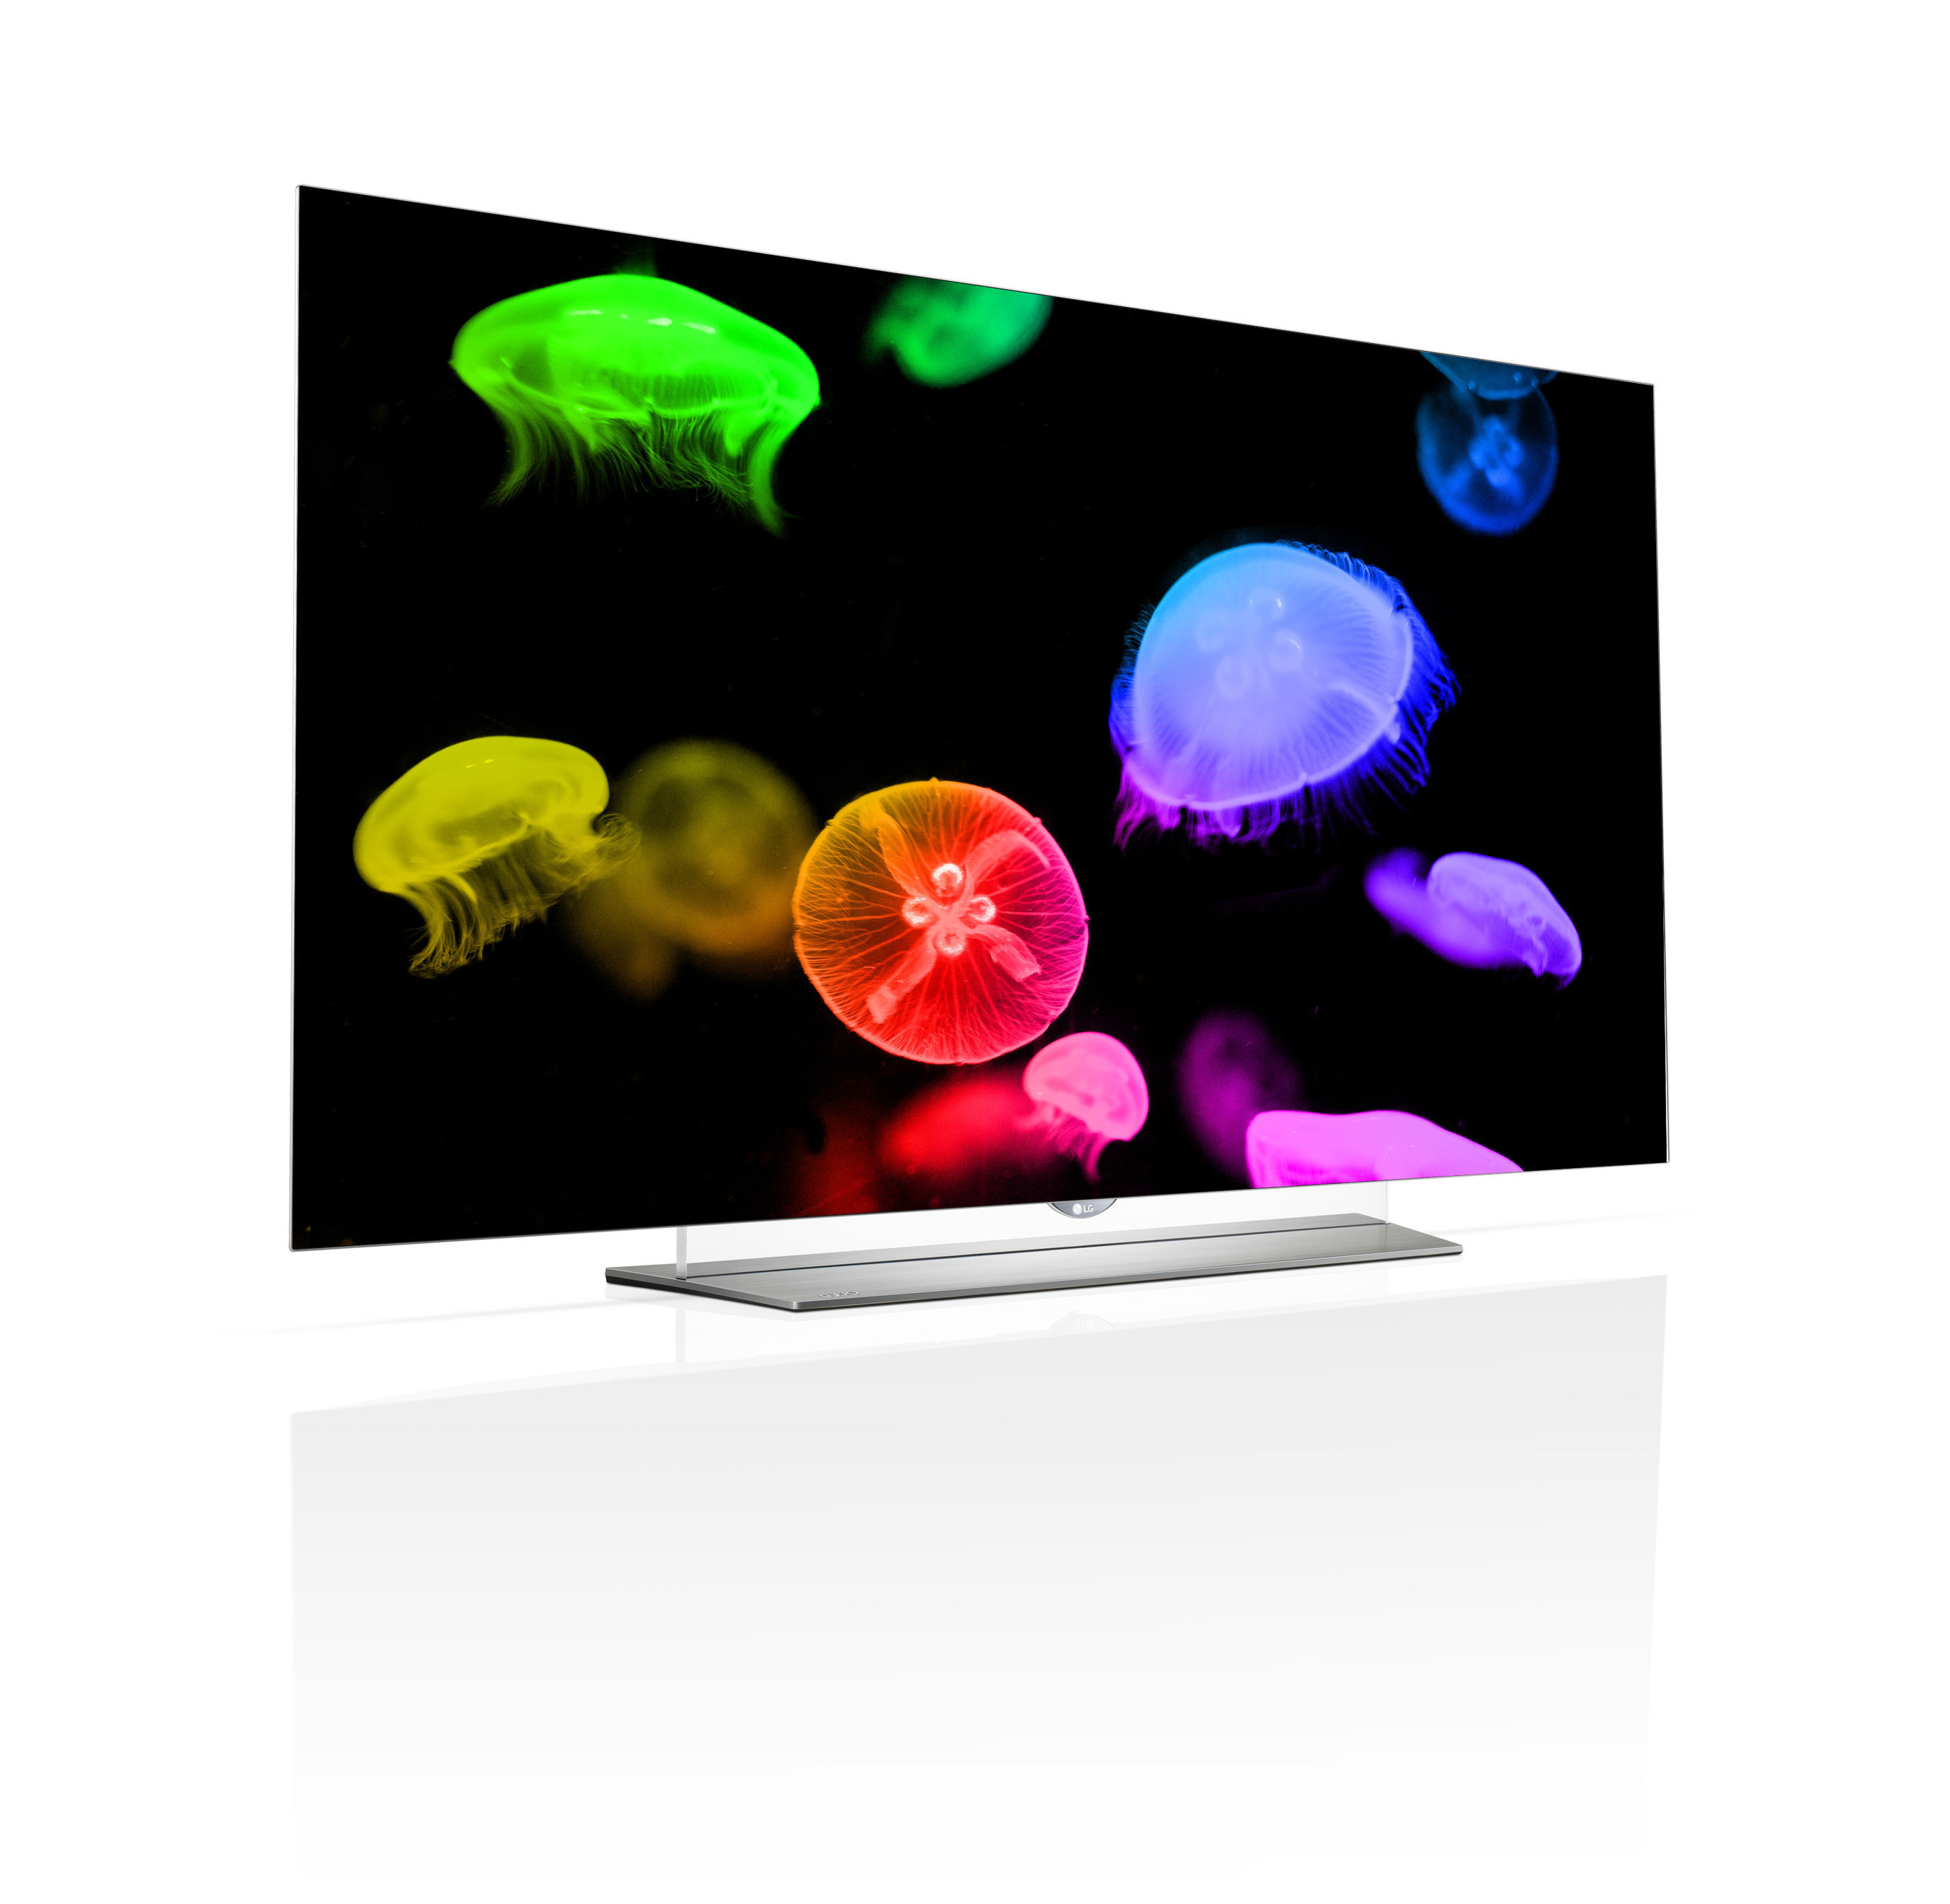 The EF9500 (pictured) represents the world's first flat 4K resolution OLED TV display, and will be available next month in 55- and 65-inch class sizes, for $5,499 and $6,999, respectively. With its retail launch, LG now offers OLED TVs in 55-, 65-, and 77-inch class sizes, both curved and flat configurations, and 1080p and 4K resolutions.